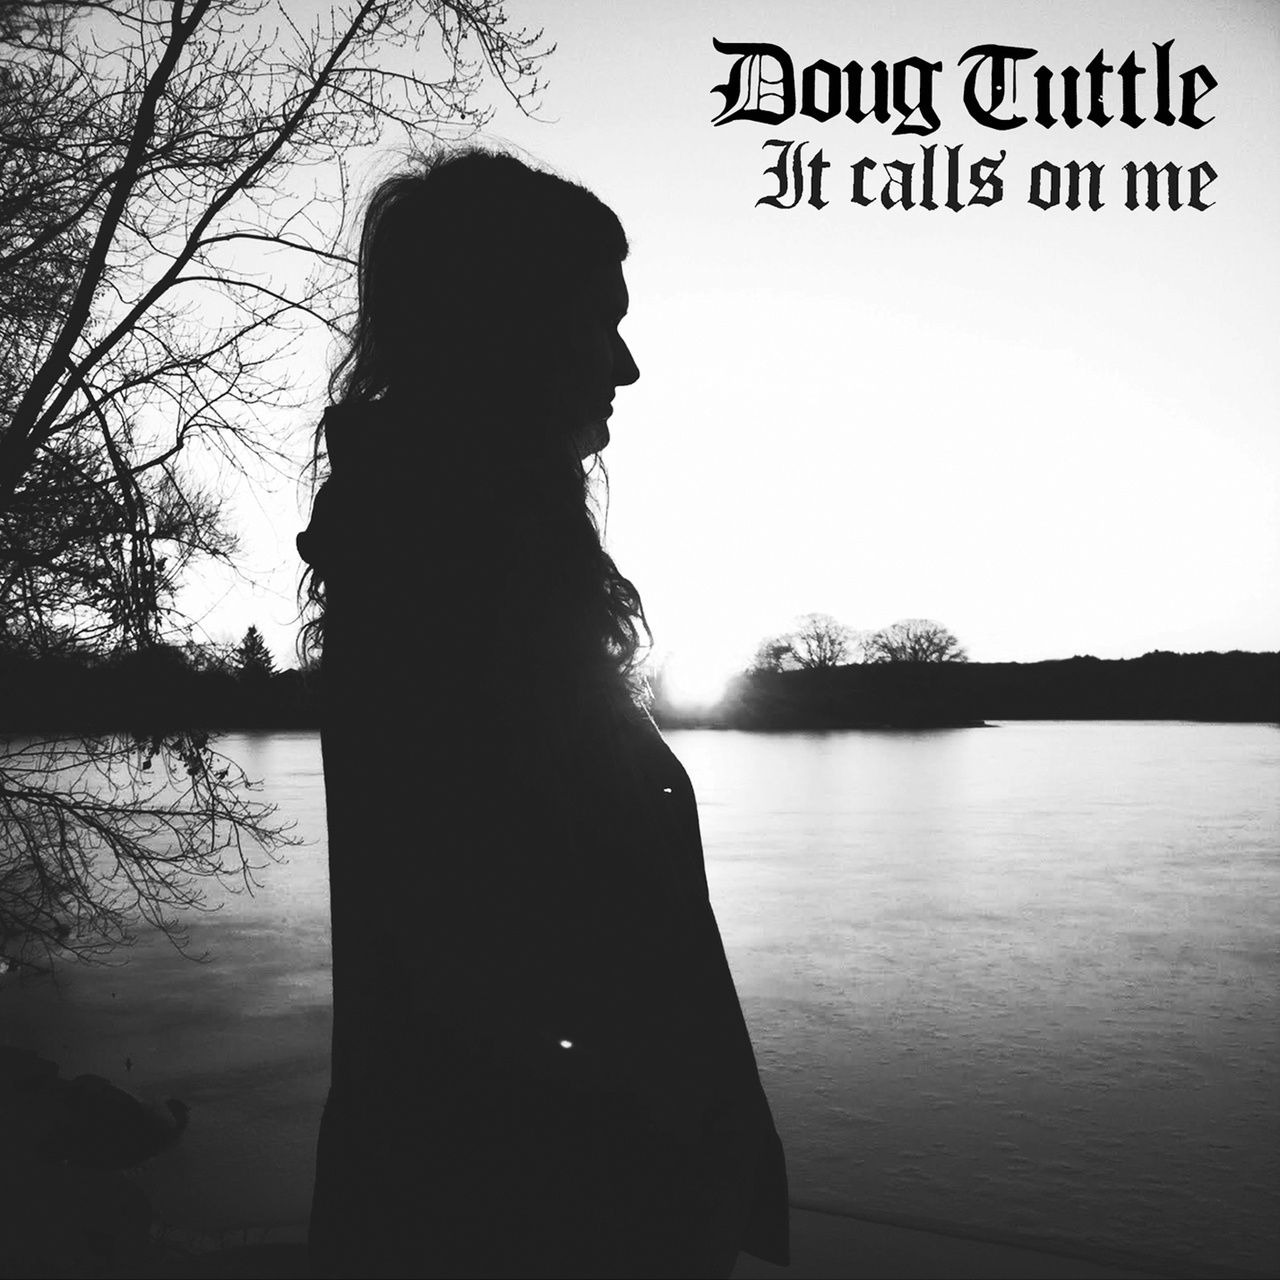 DOUG TUTTLE - It Calls on me (2016)